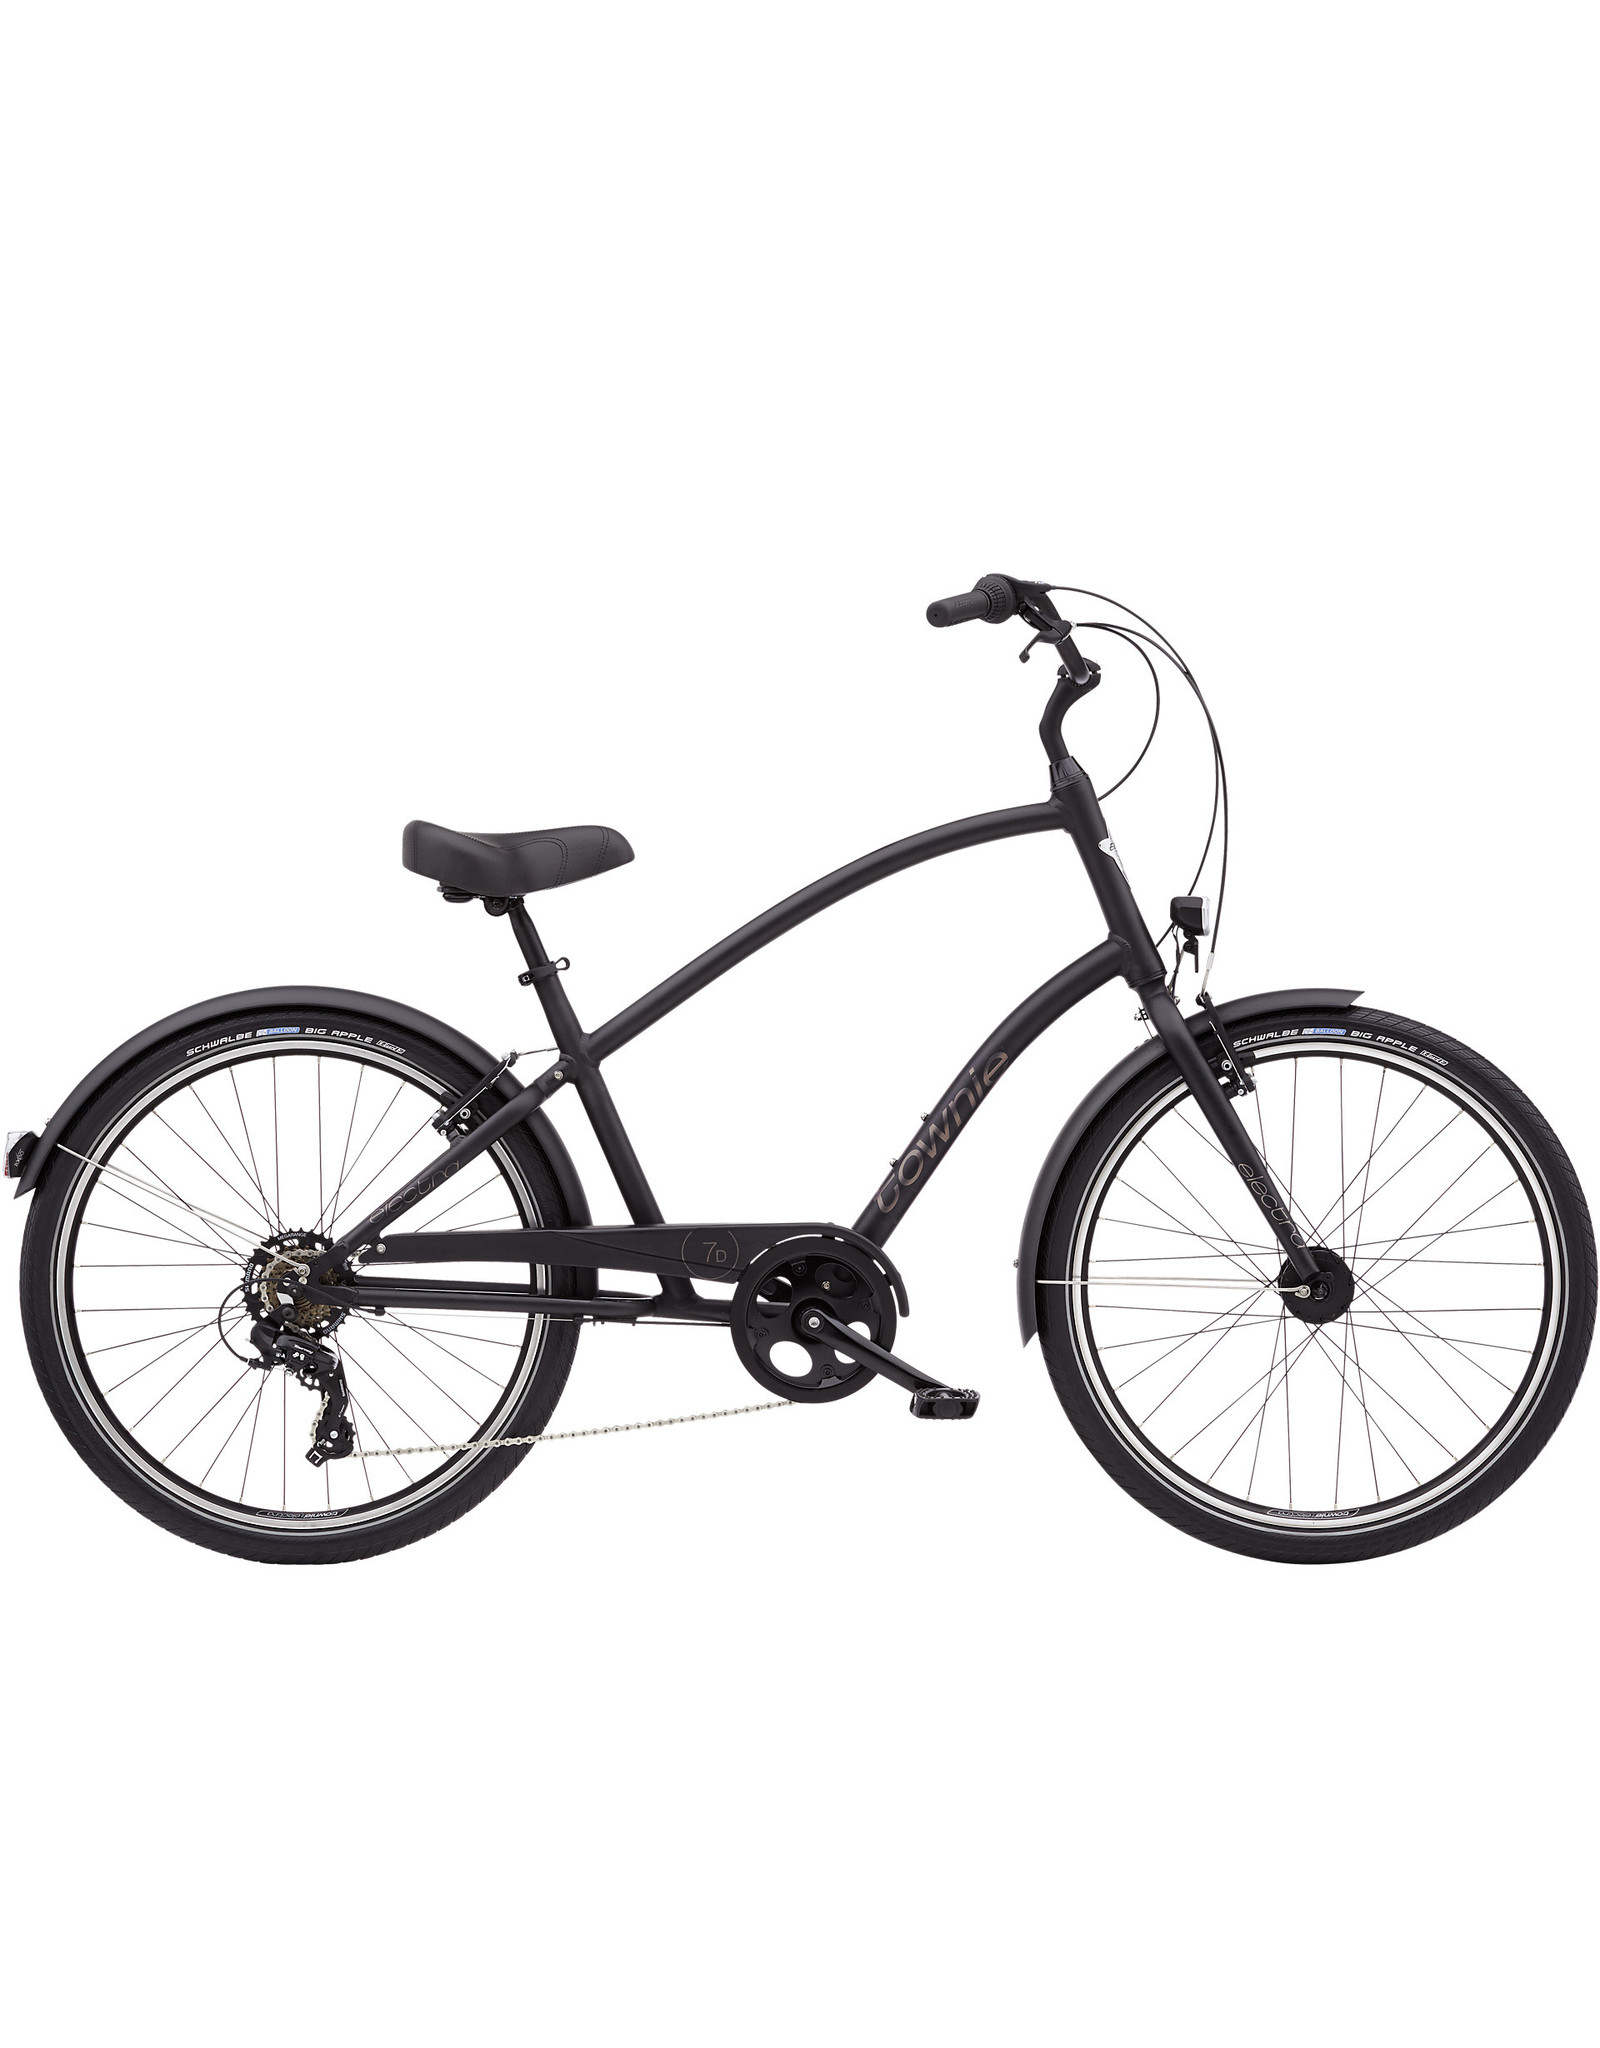 Electra Electra Townie 7D EQ Step Over 2021